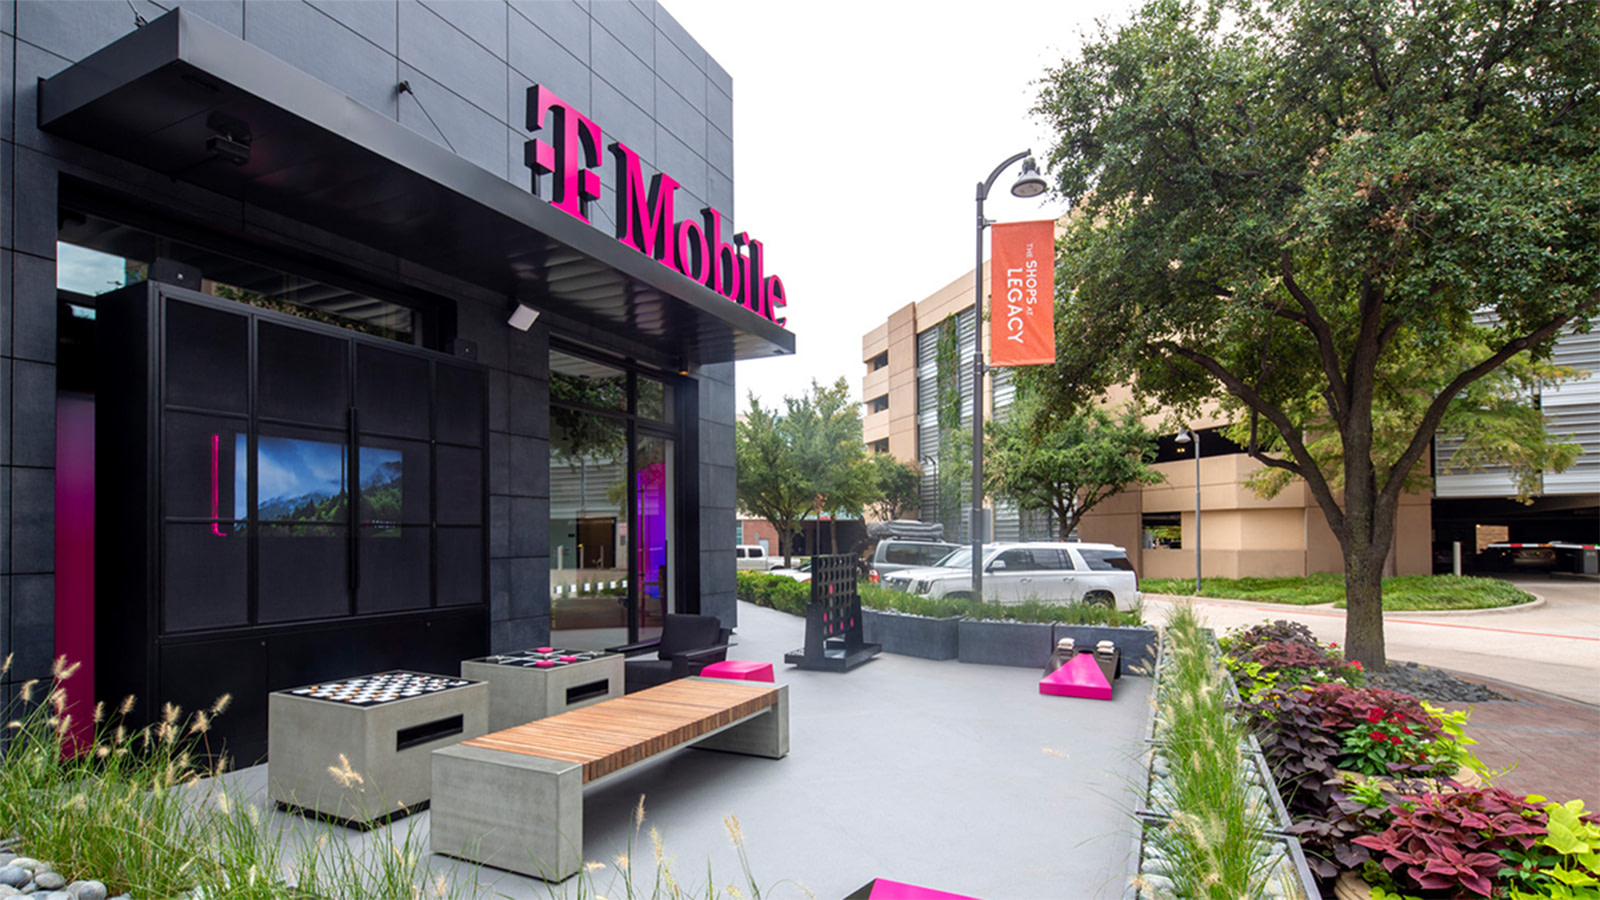 Each t-mobile location is approximately 10,000 square feet